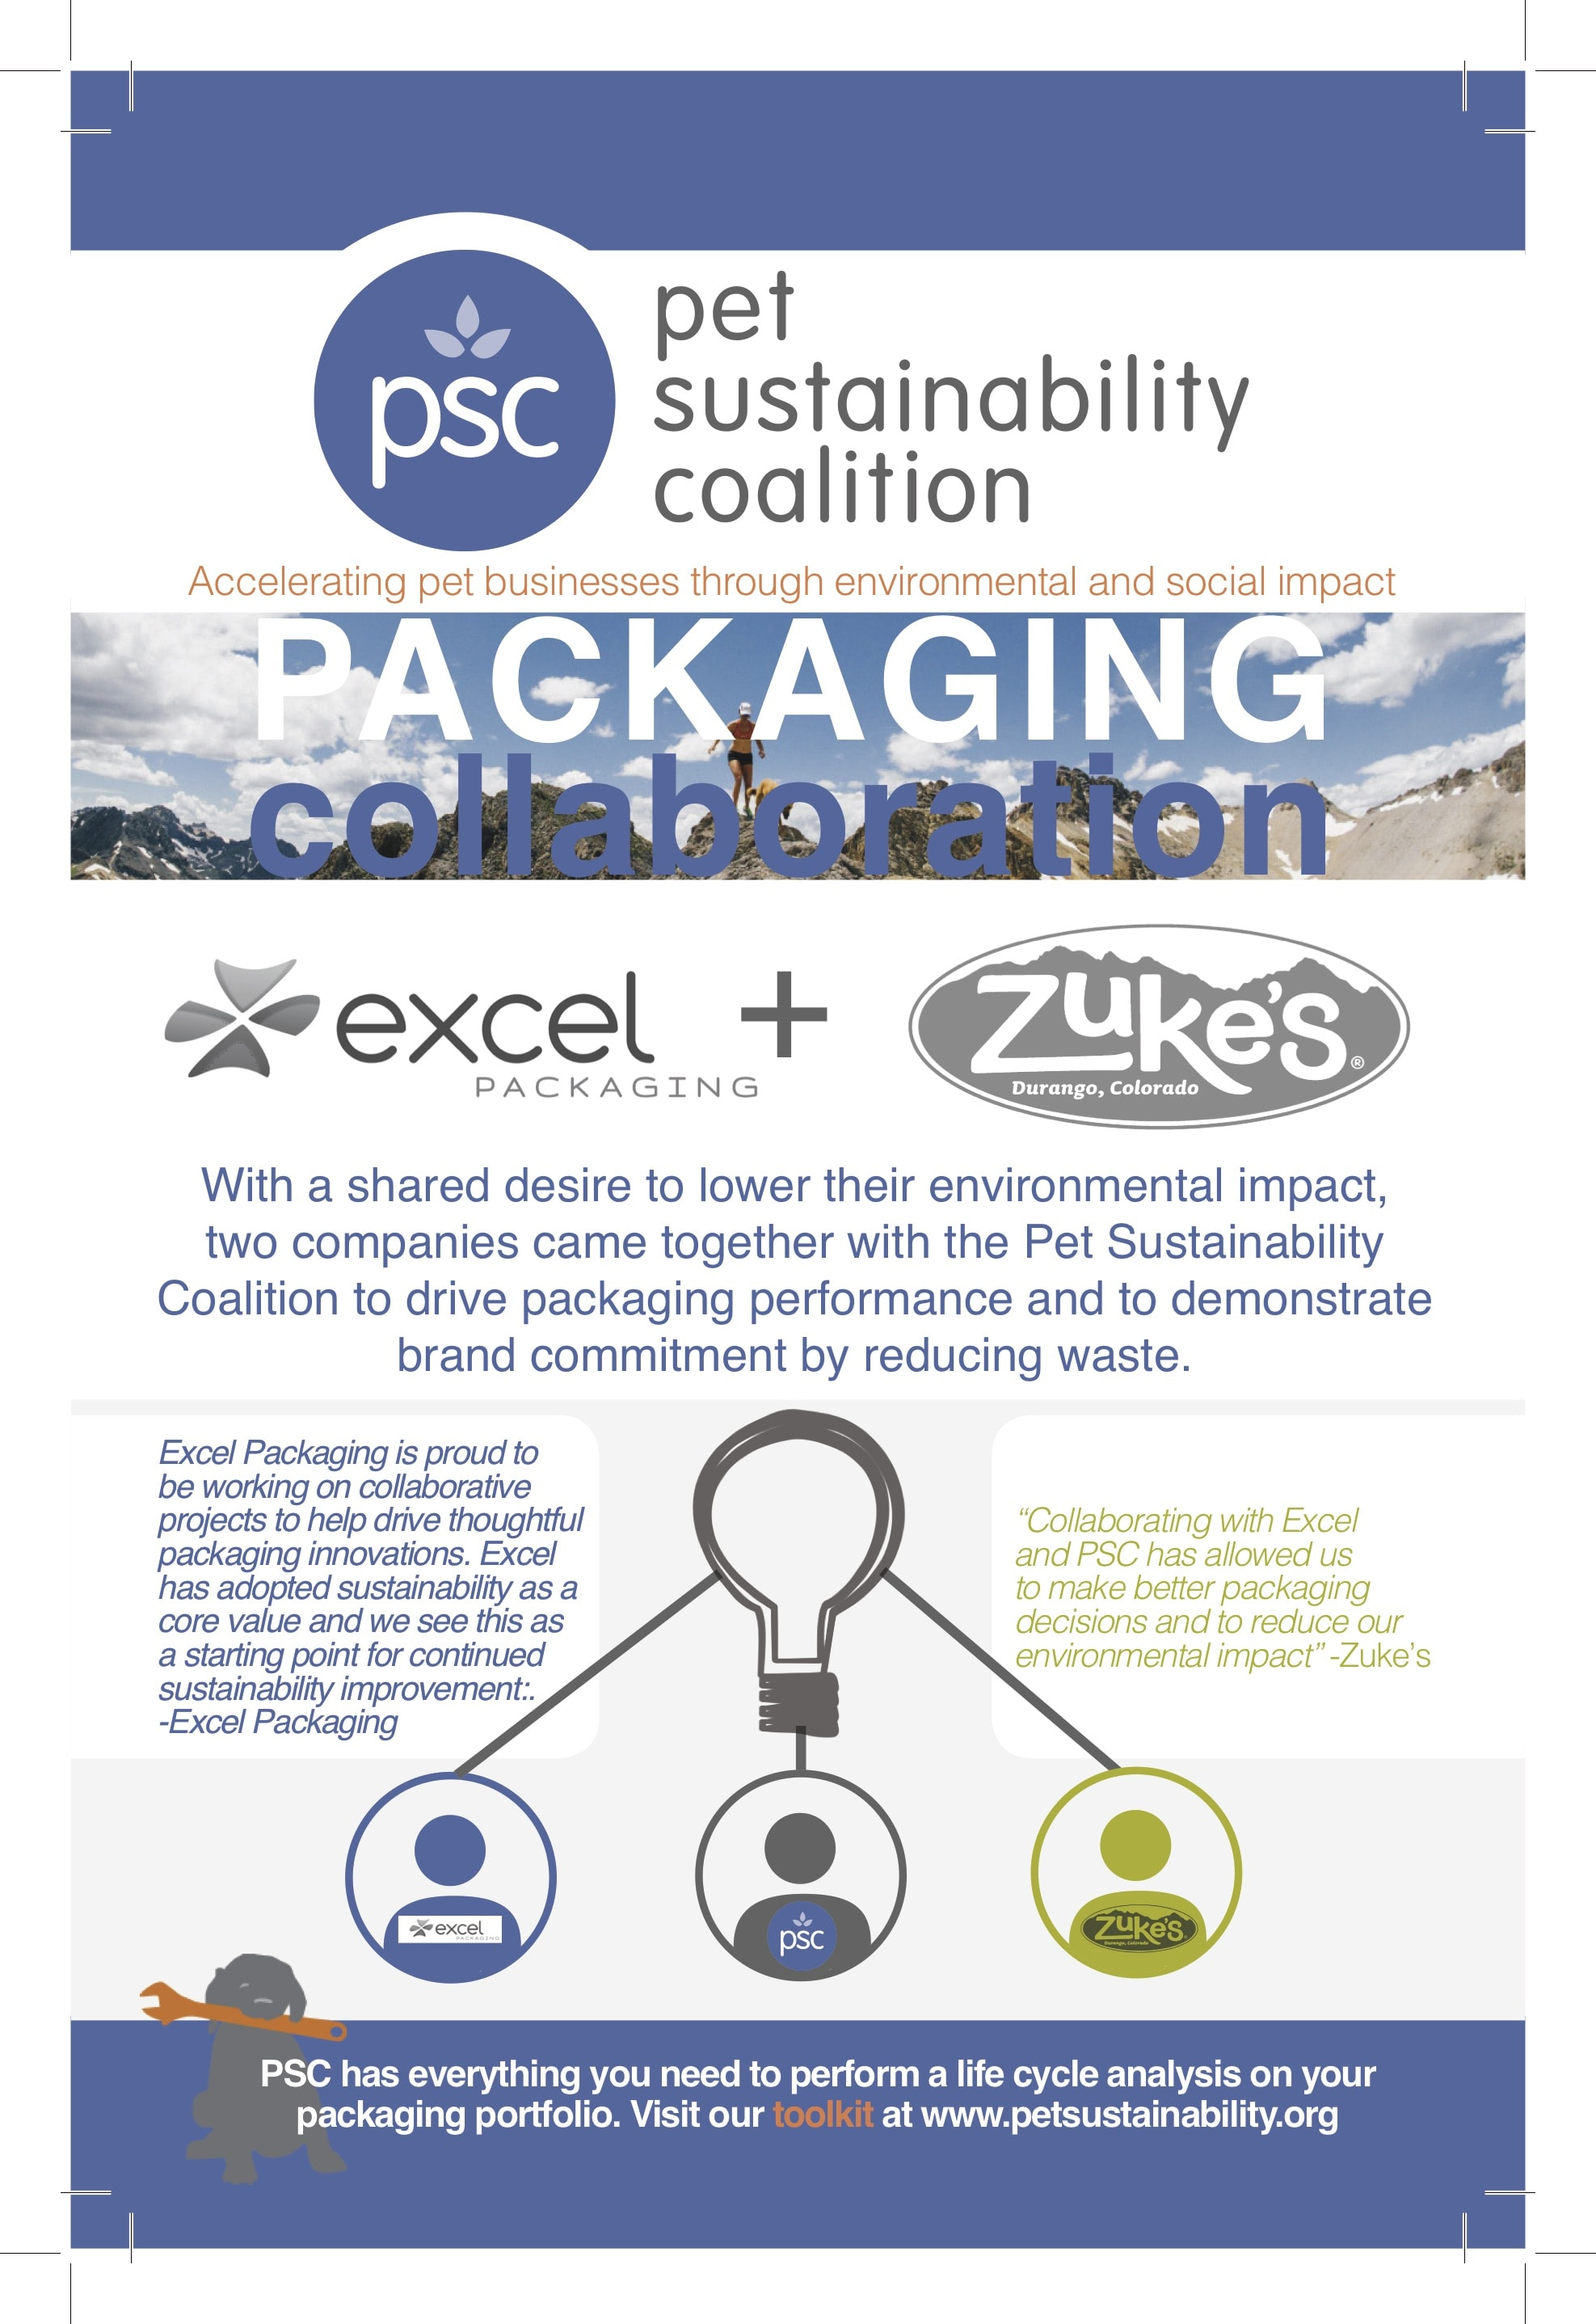 PSC Members Now Have Access to Nation's Leading Sustainable Packaging Platform